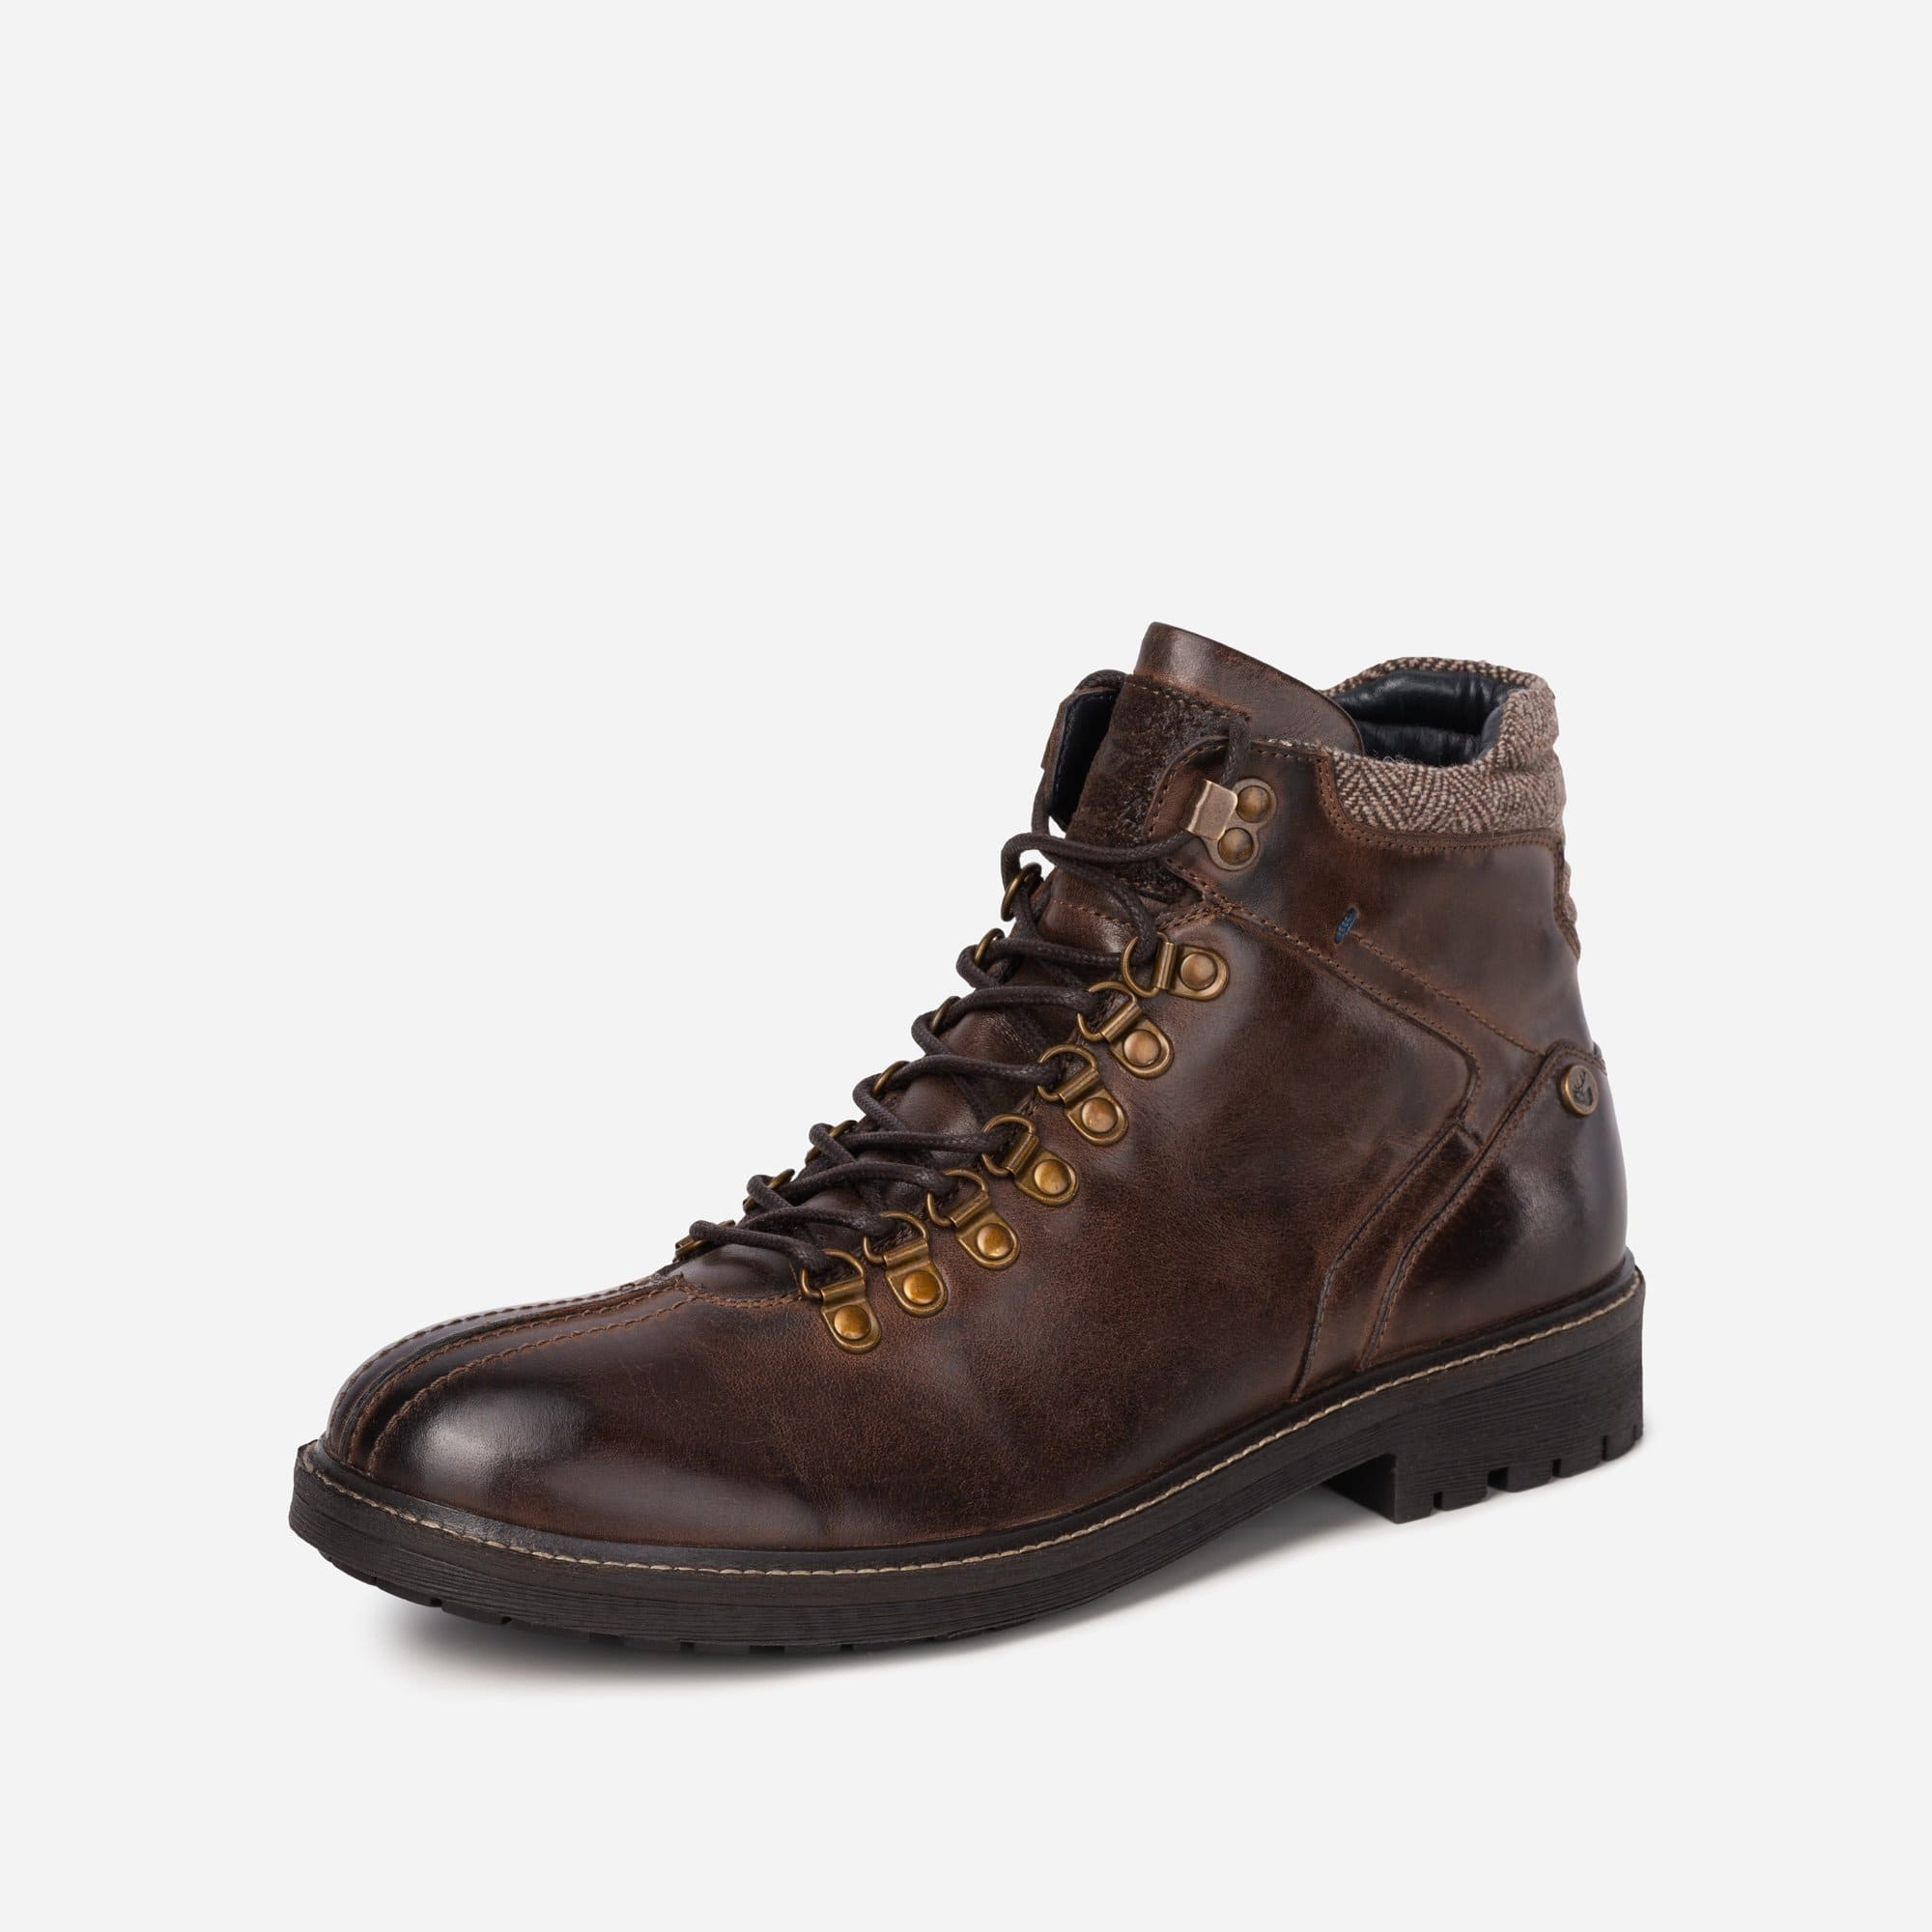 Goodwin Smith Footwear MENS GS EDGAR BROWN HIKING BOOT